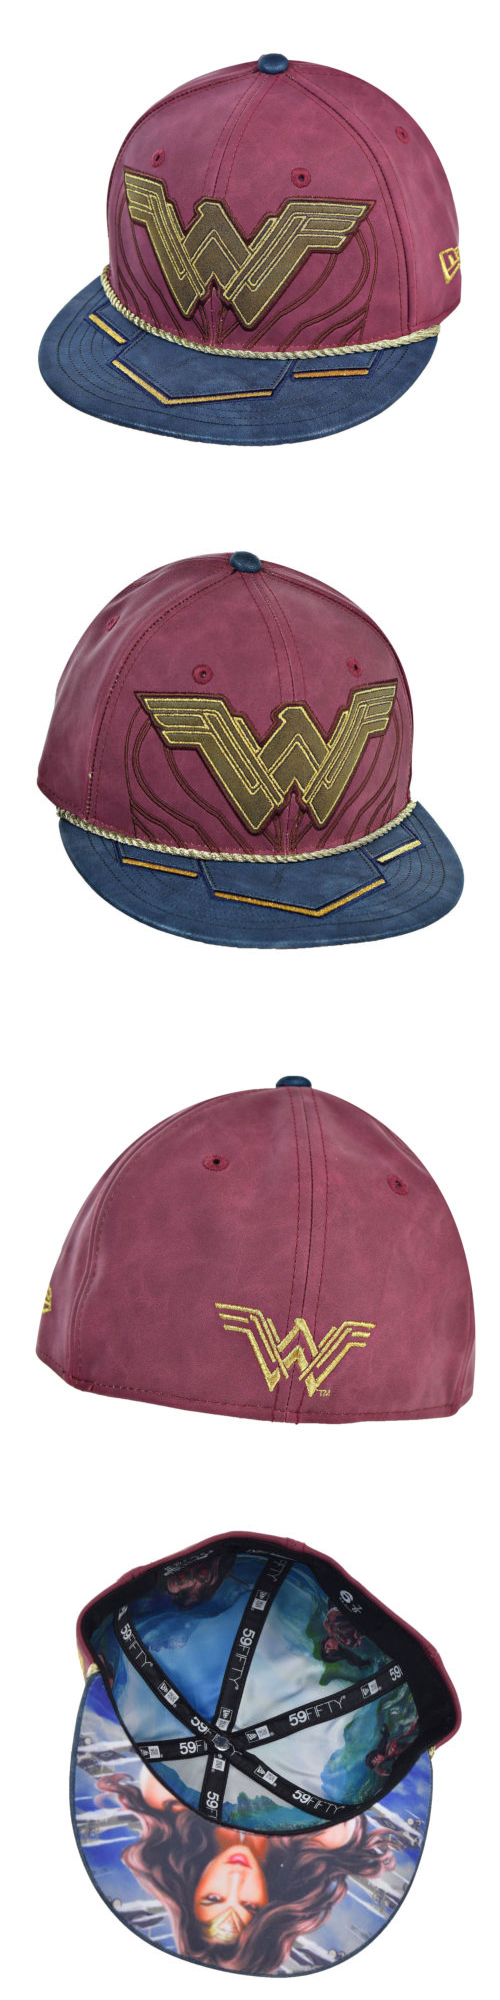 Hats 52365  New Era Wonder Woman Battle Armor 59Fifty Unisex Fitted Hat Cap  Light Red Gold -  BUY IT NOW ONLY   49.95 on eBay! 9a2c0ab363ed